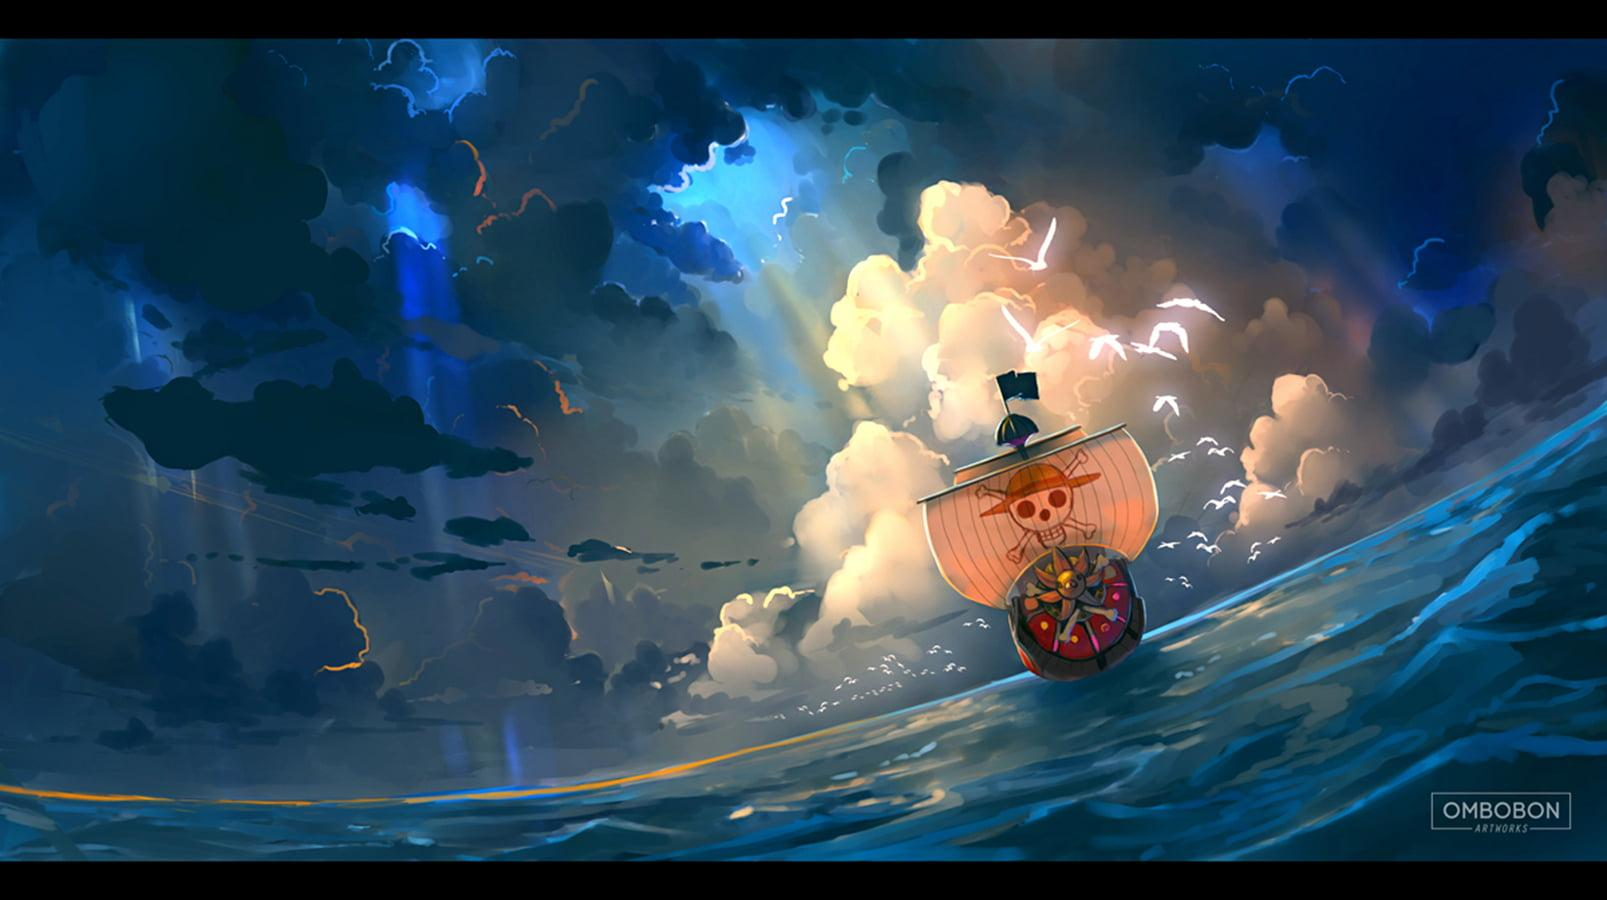 One Piece Going Merry 3D wallpaper, One Piece, anime HD wallpapers